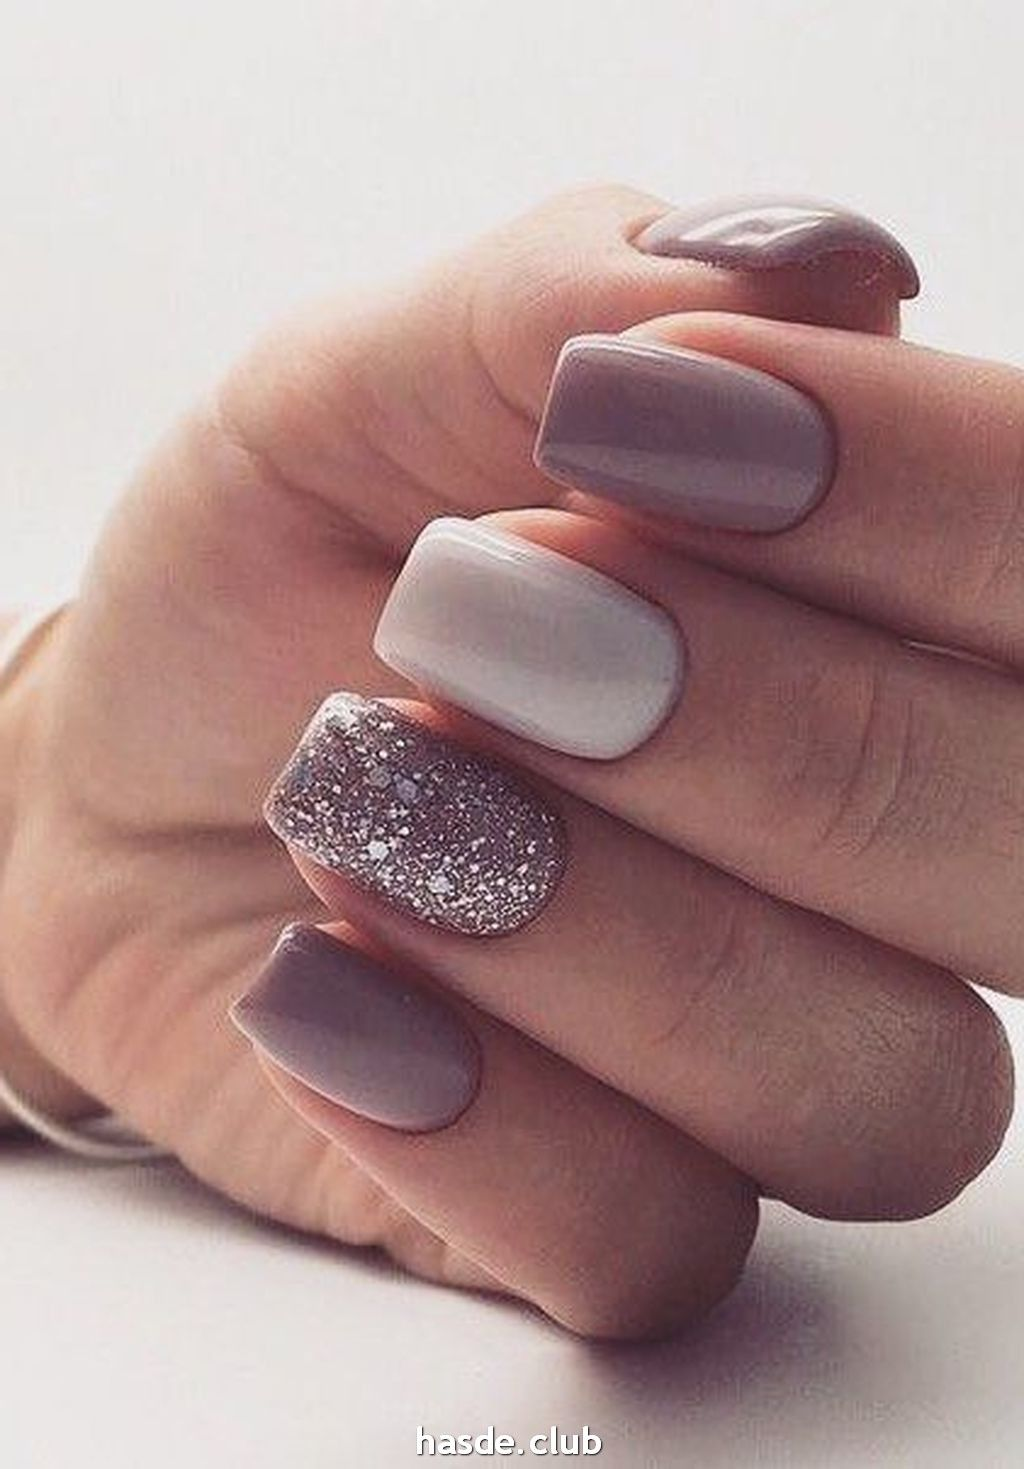 30 Inspiring Winter Nails Color Trend 2020 In 2020 Gelove Nehty Design Nehtu Nehty